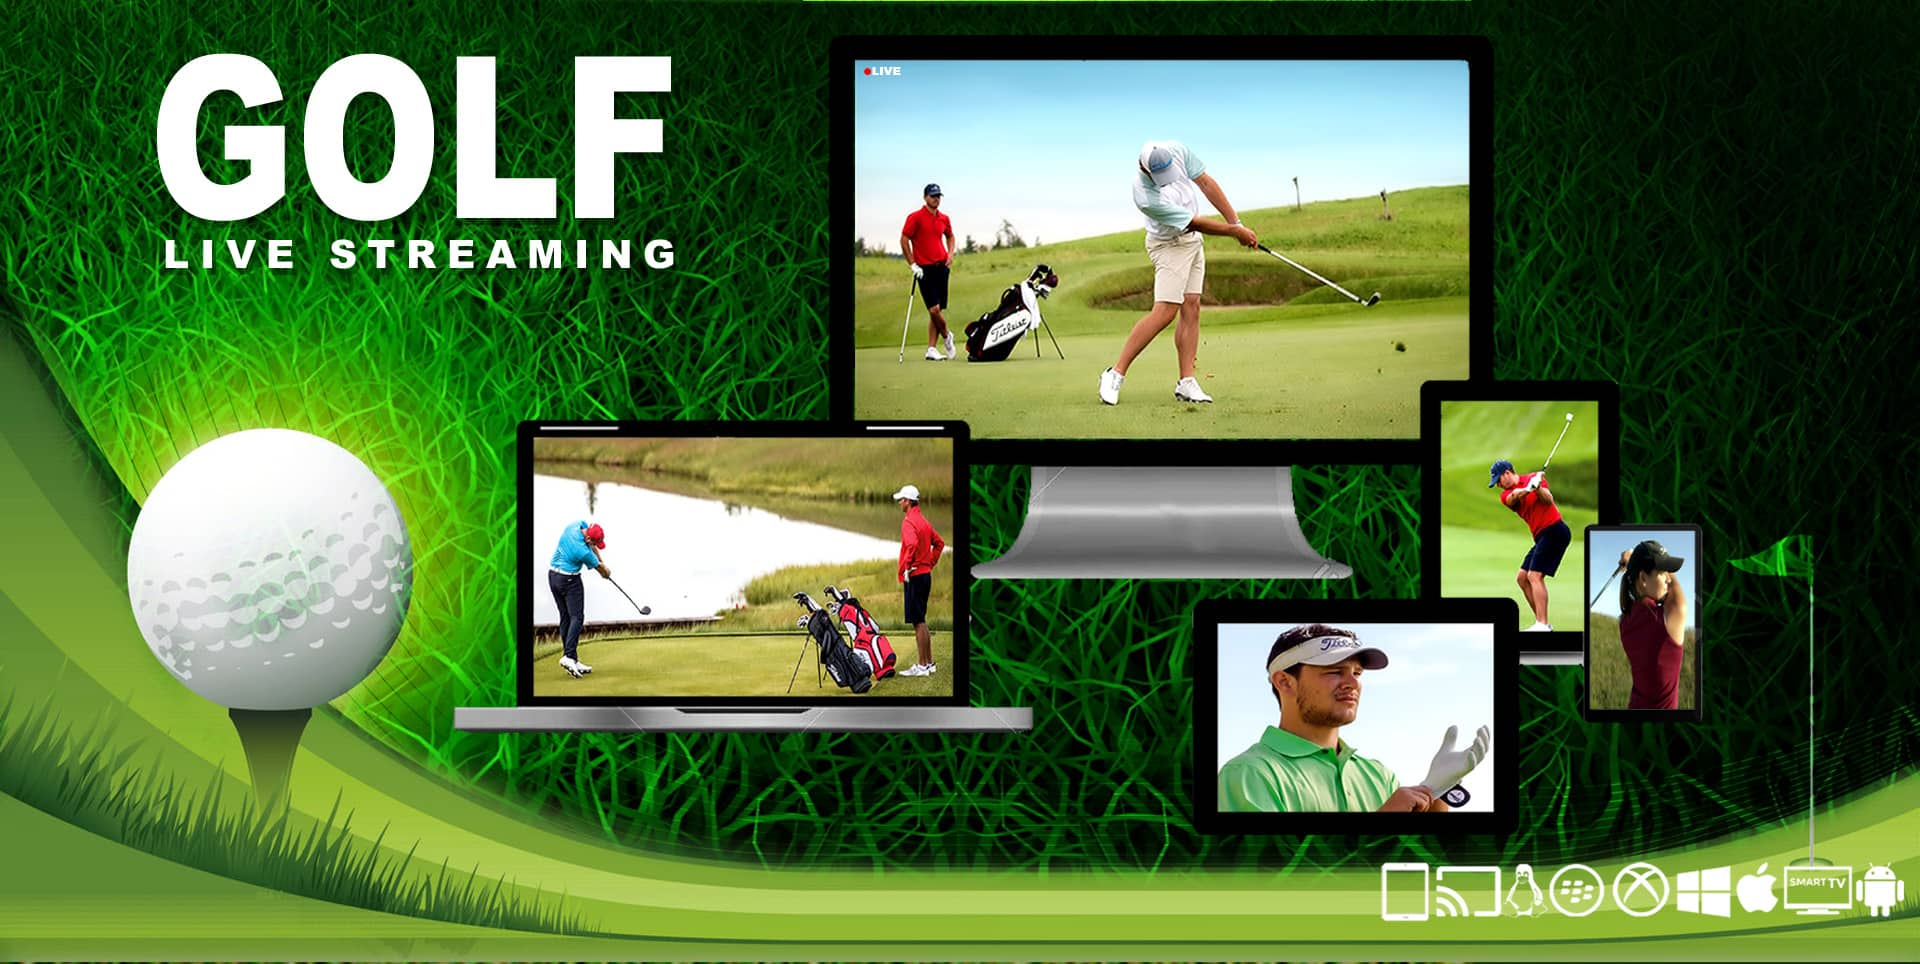 2016 Web Tour Championship Streaming Live